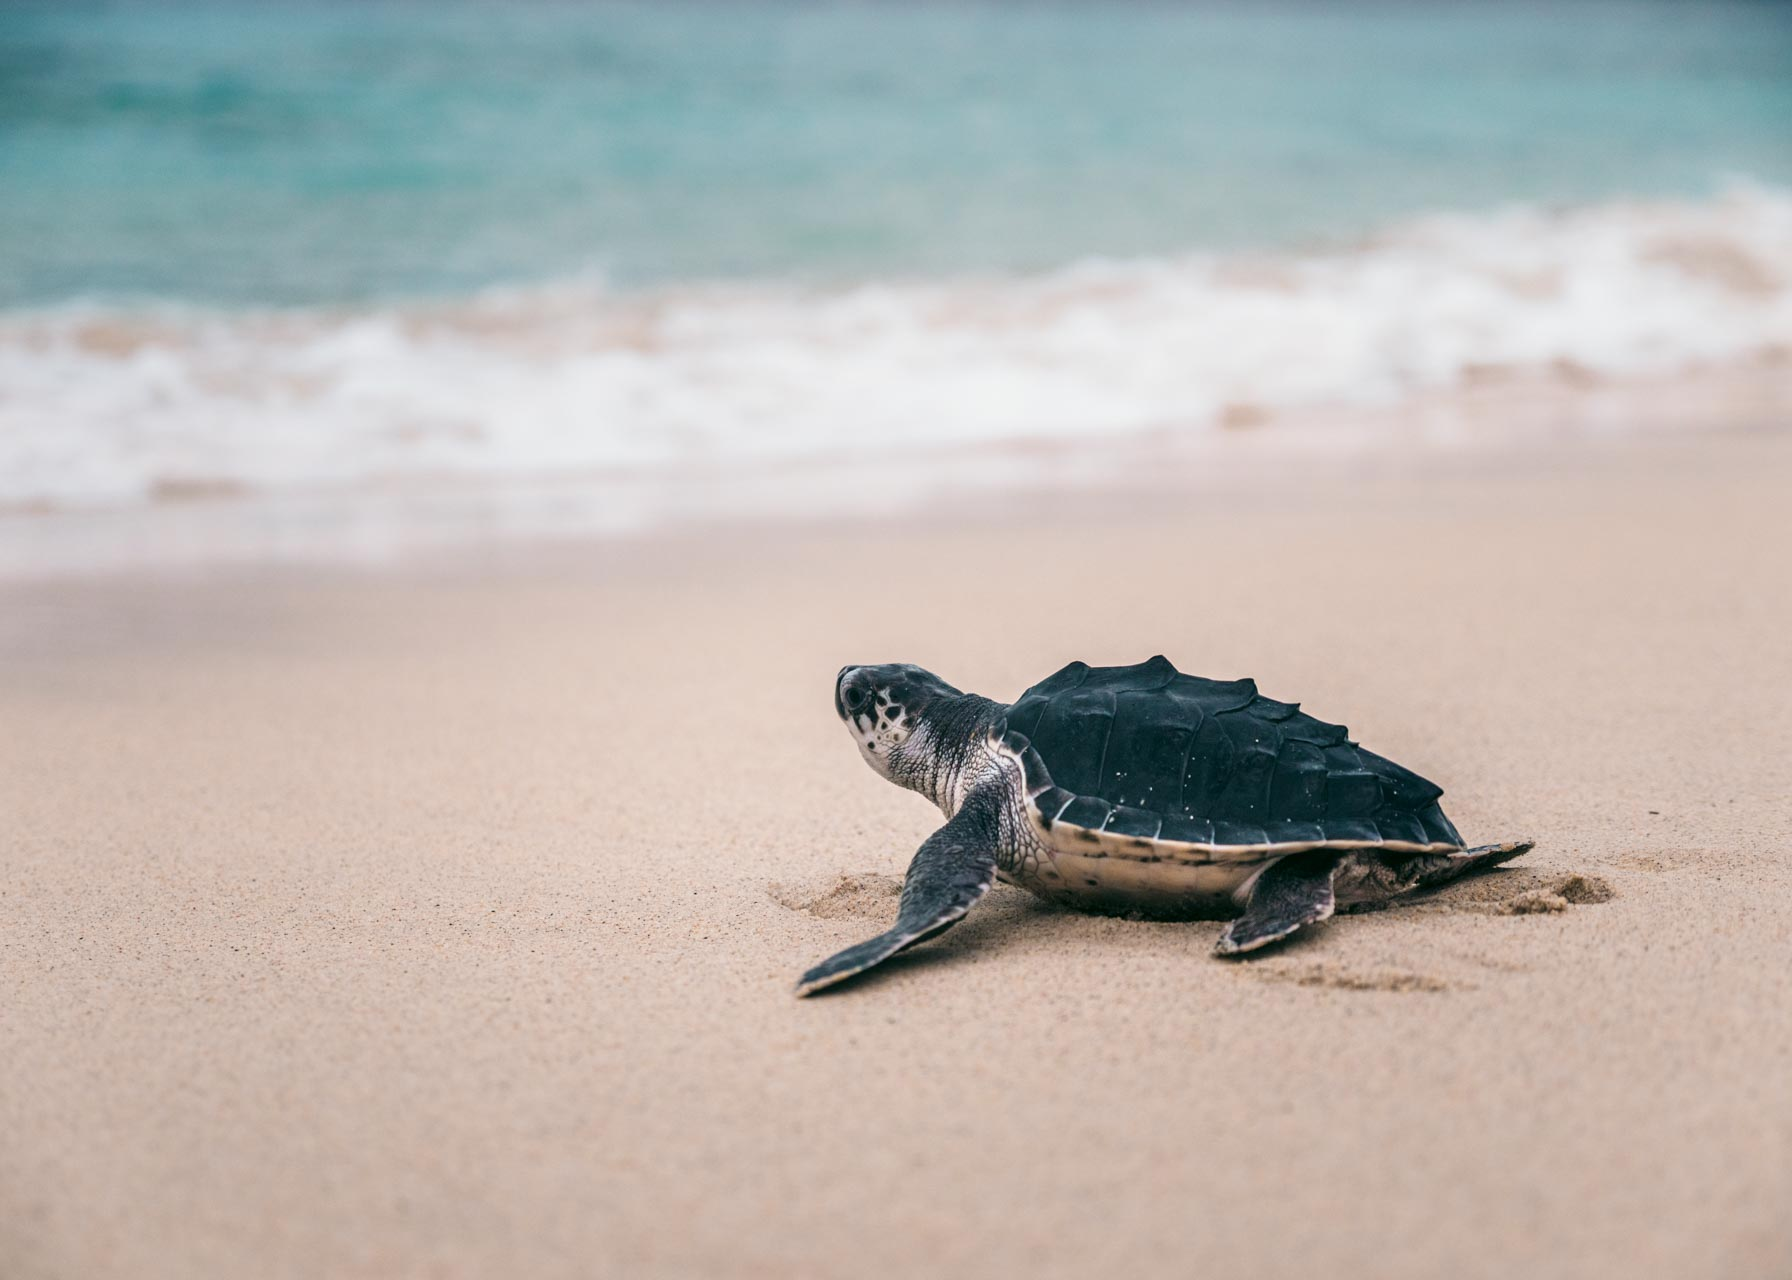 Why You Shouldn't Pick Up Baby Sea Turtles